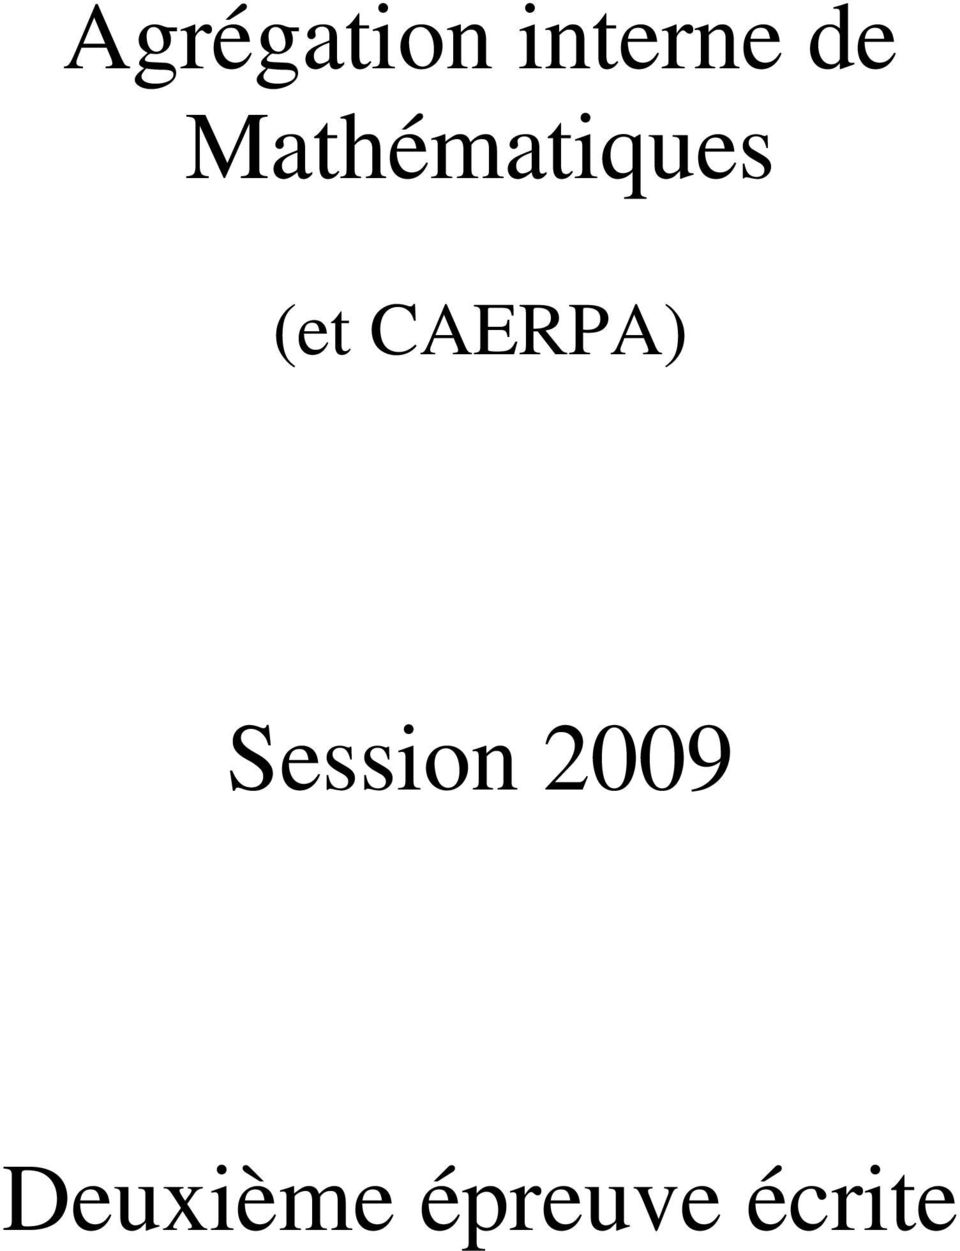 CAEPA Session 2009